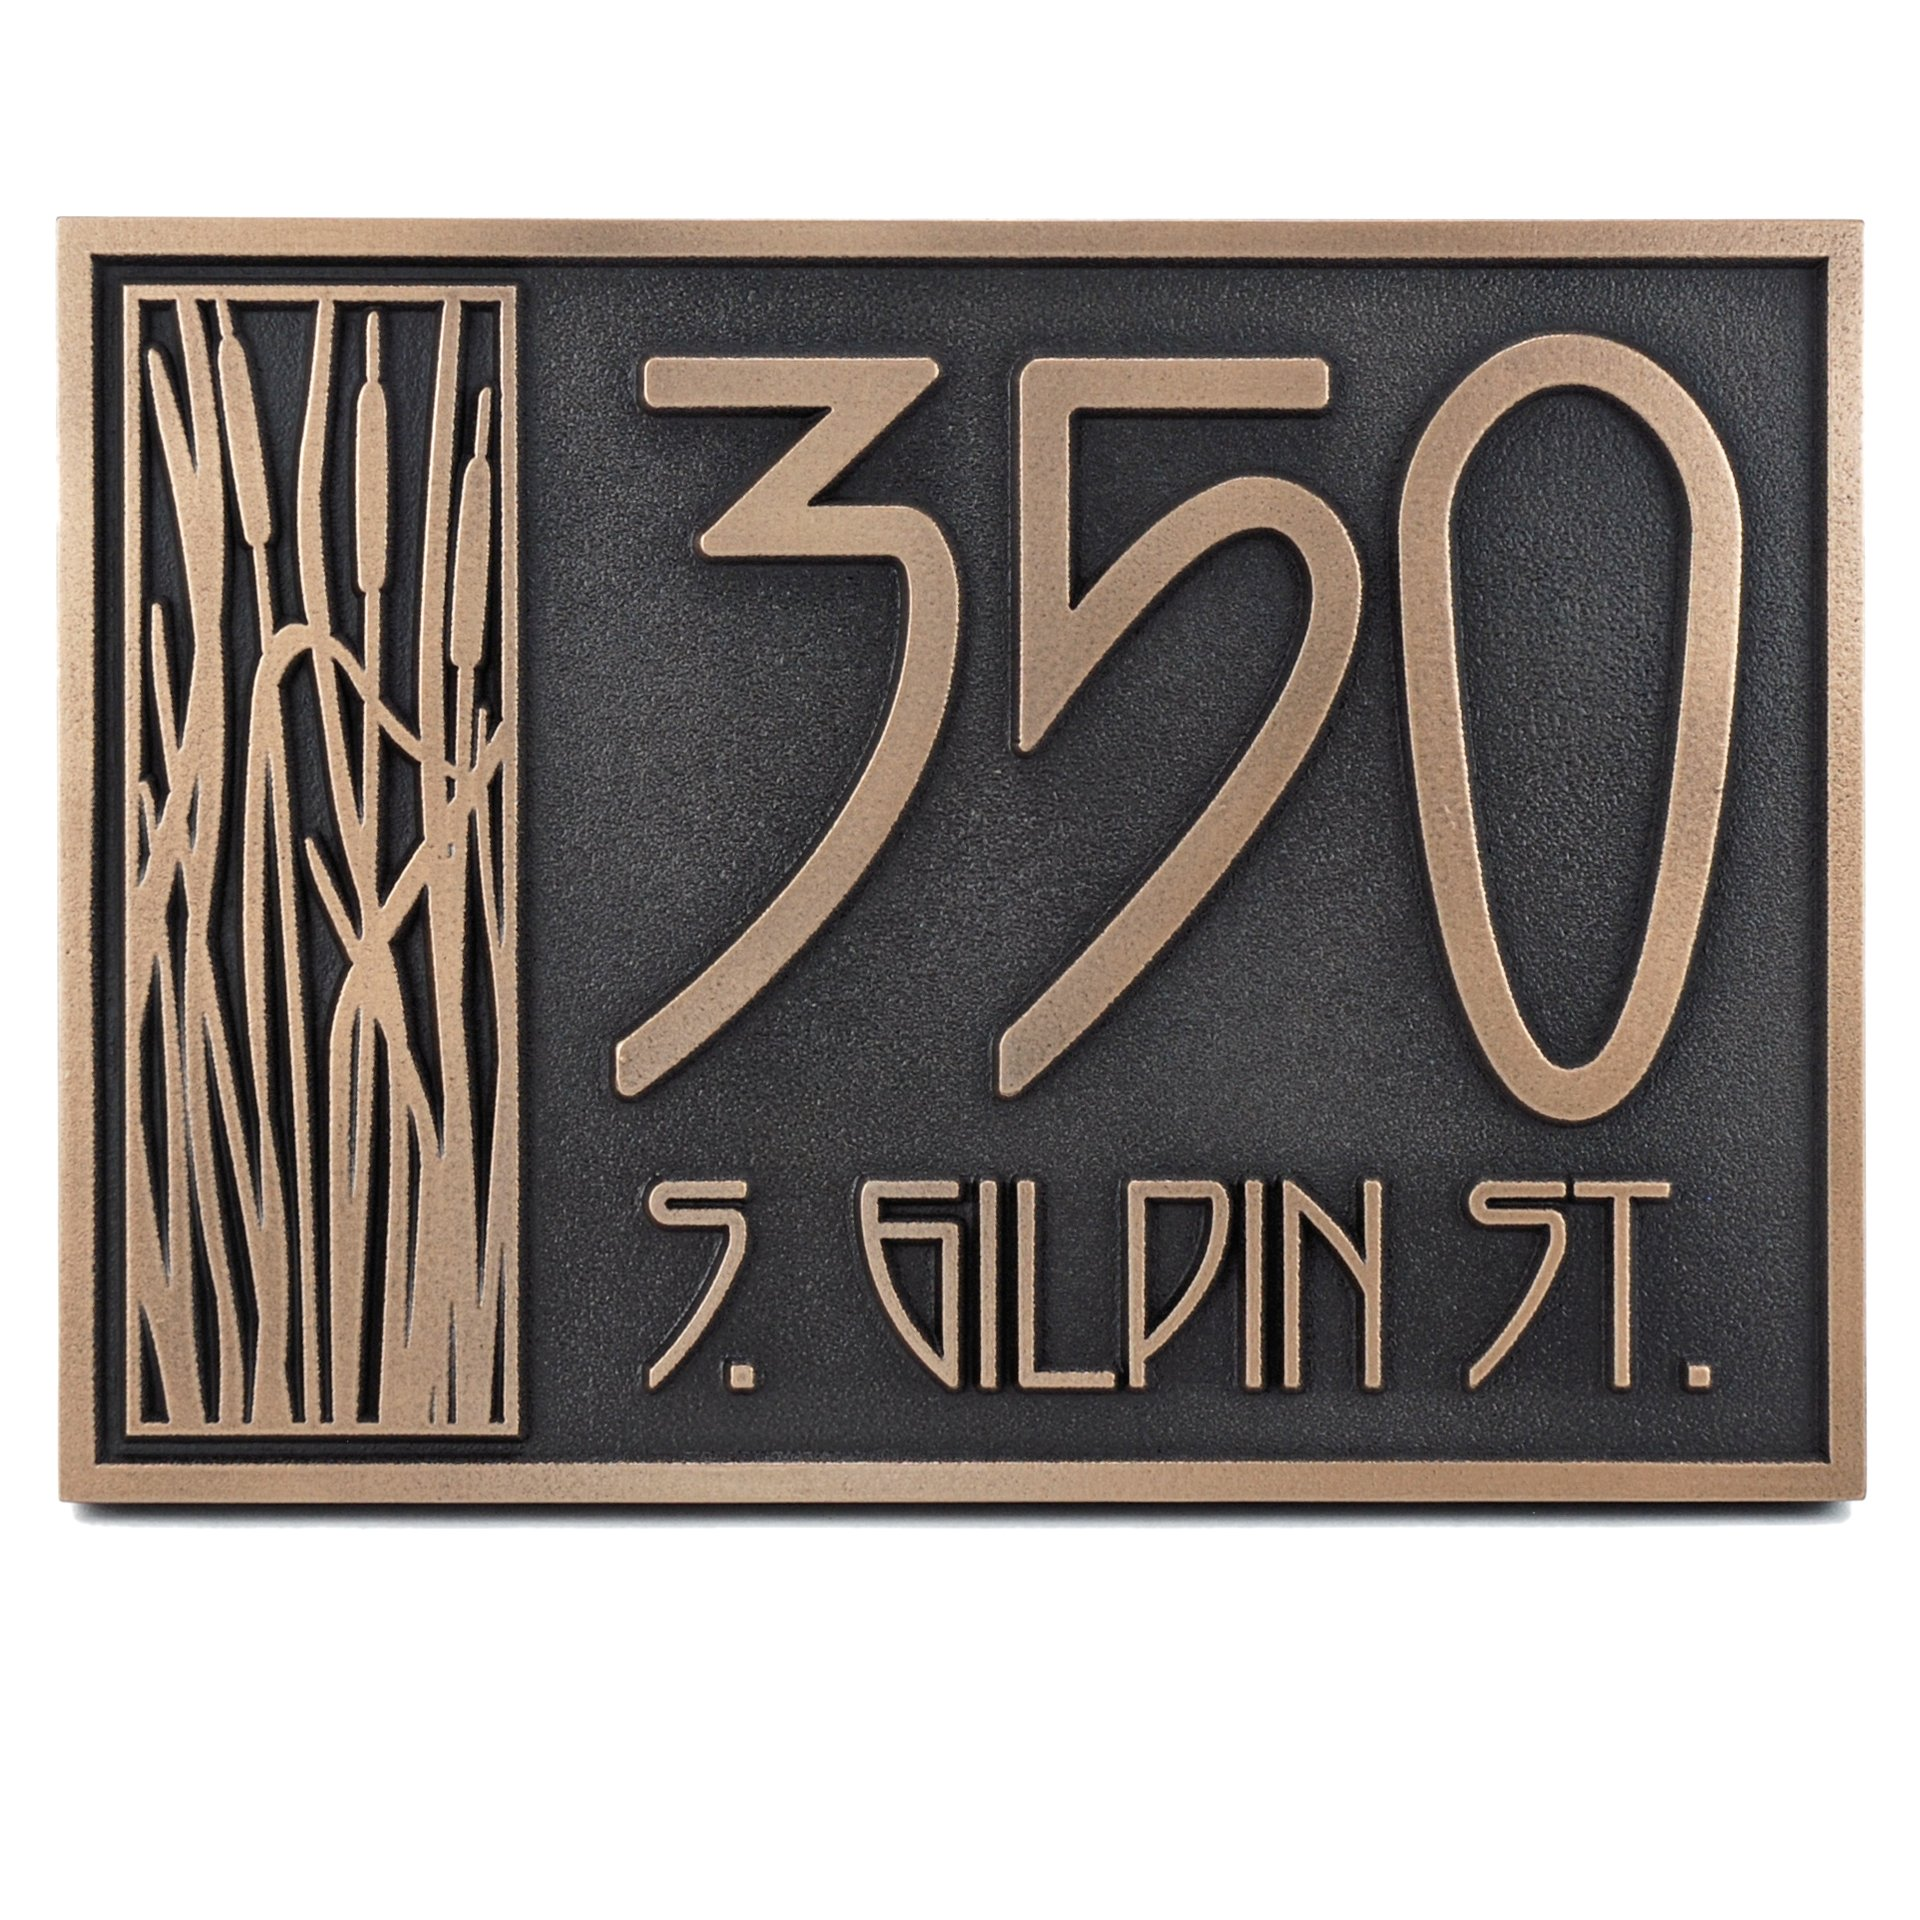 Craftsman House Numbers Plaque with Cattail - 12x8.5 - Raised Bronze Metal Coated Sign